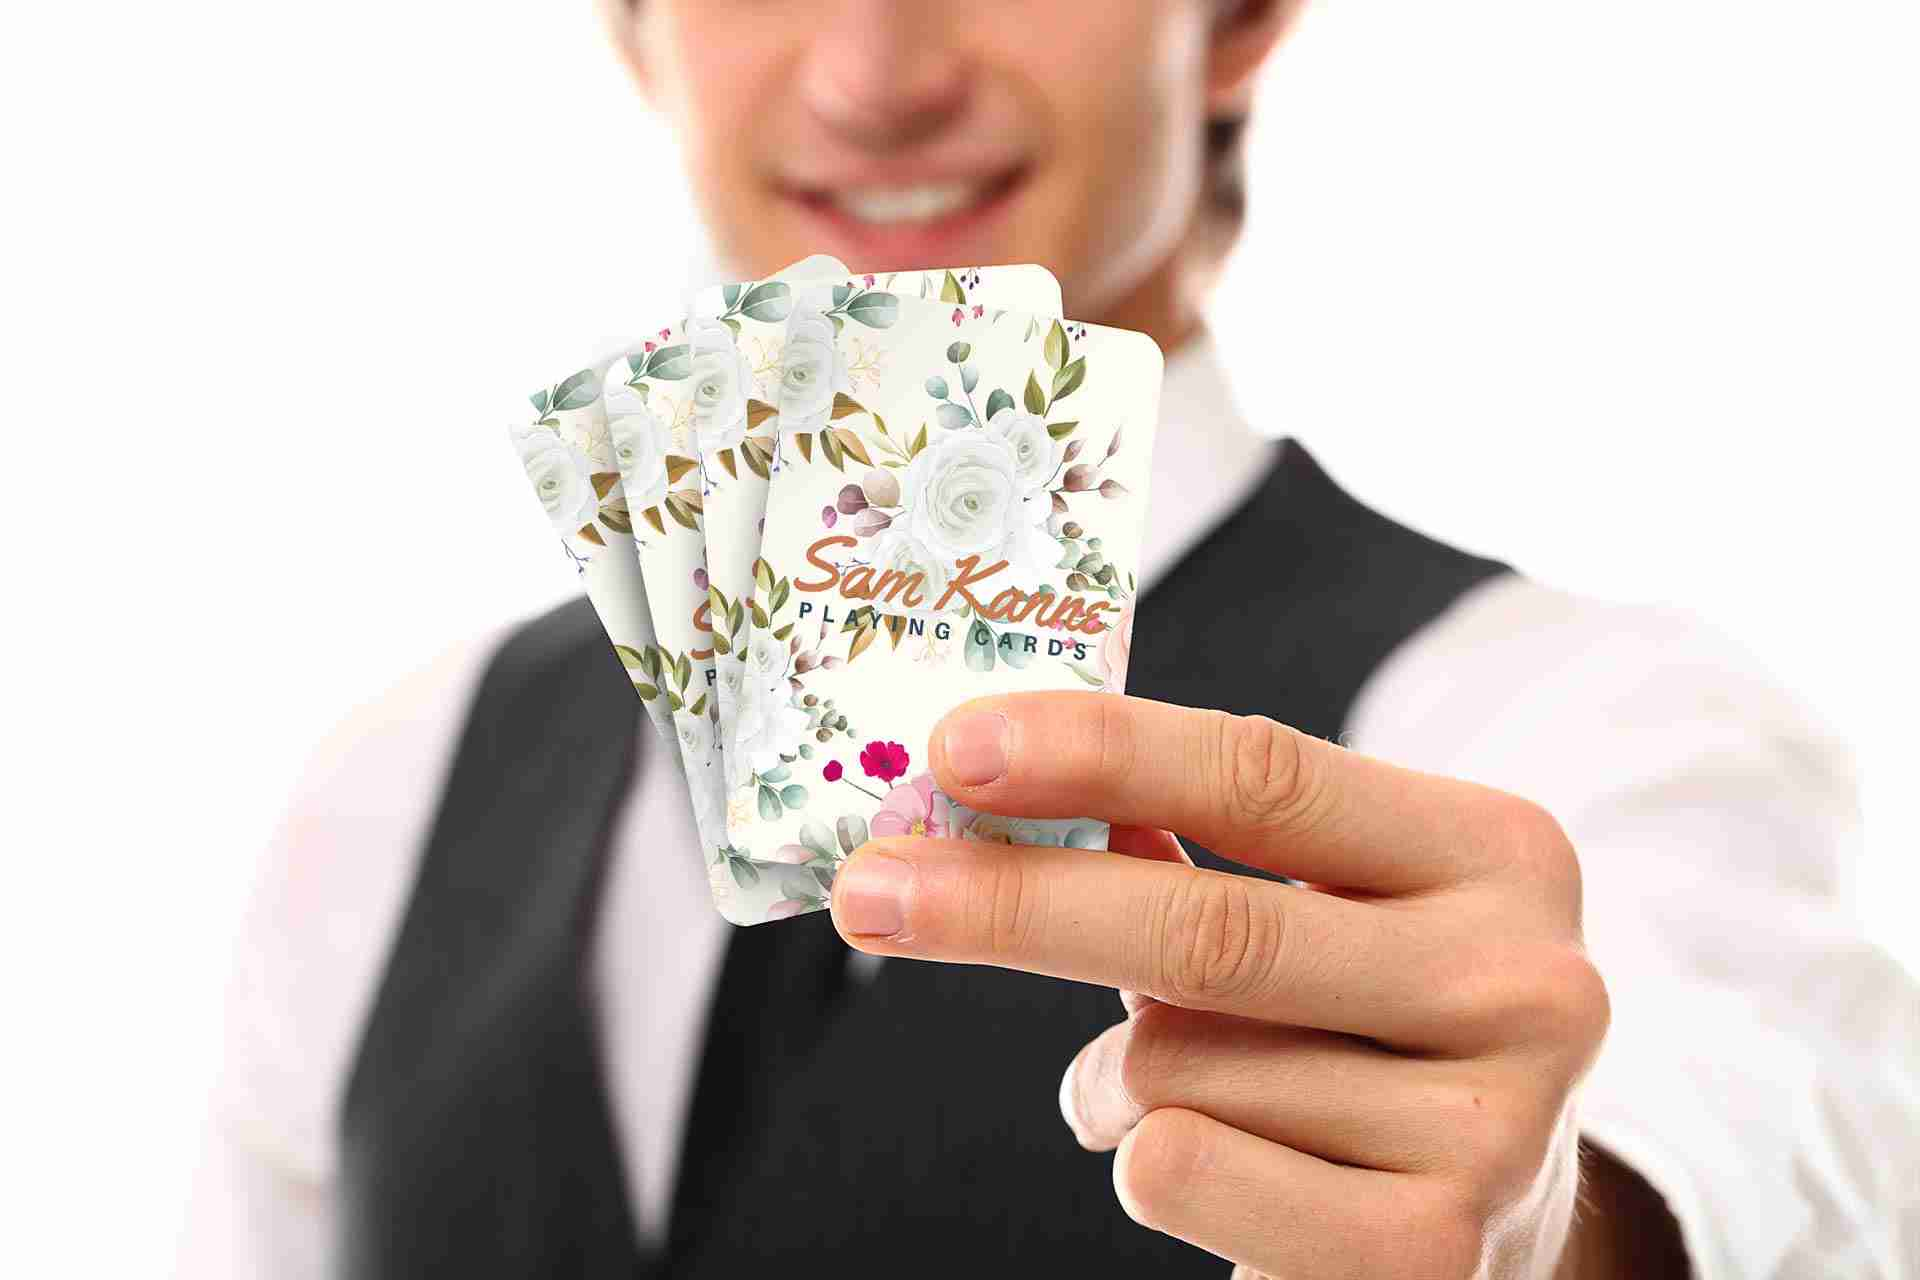 Playing-Cards-Design-Option-1-2